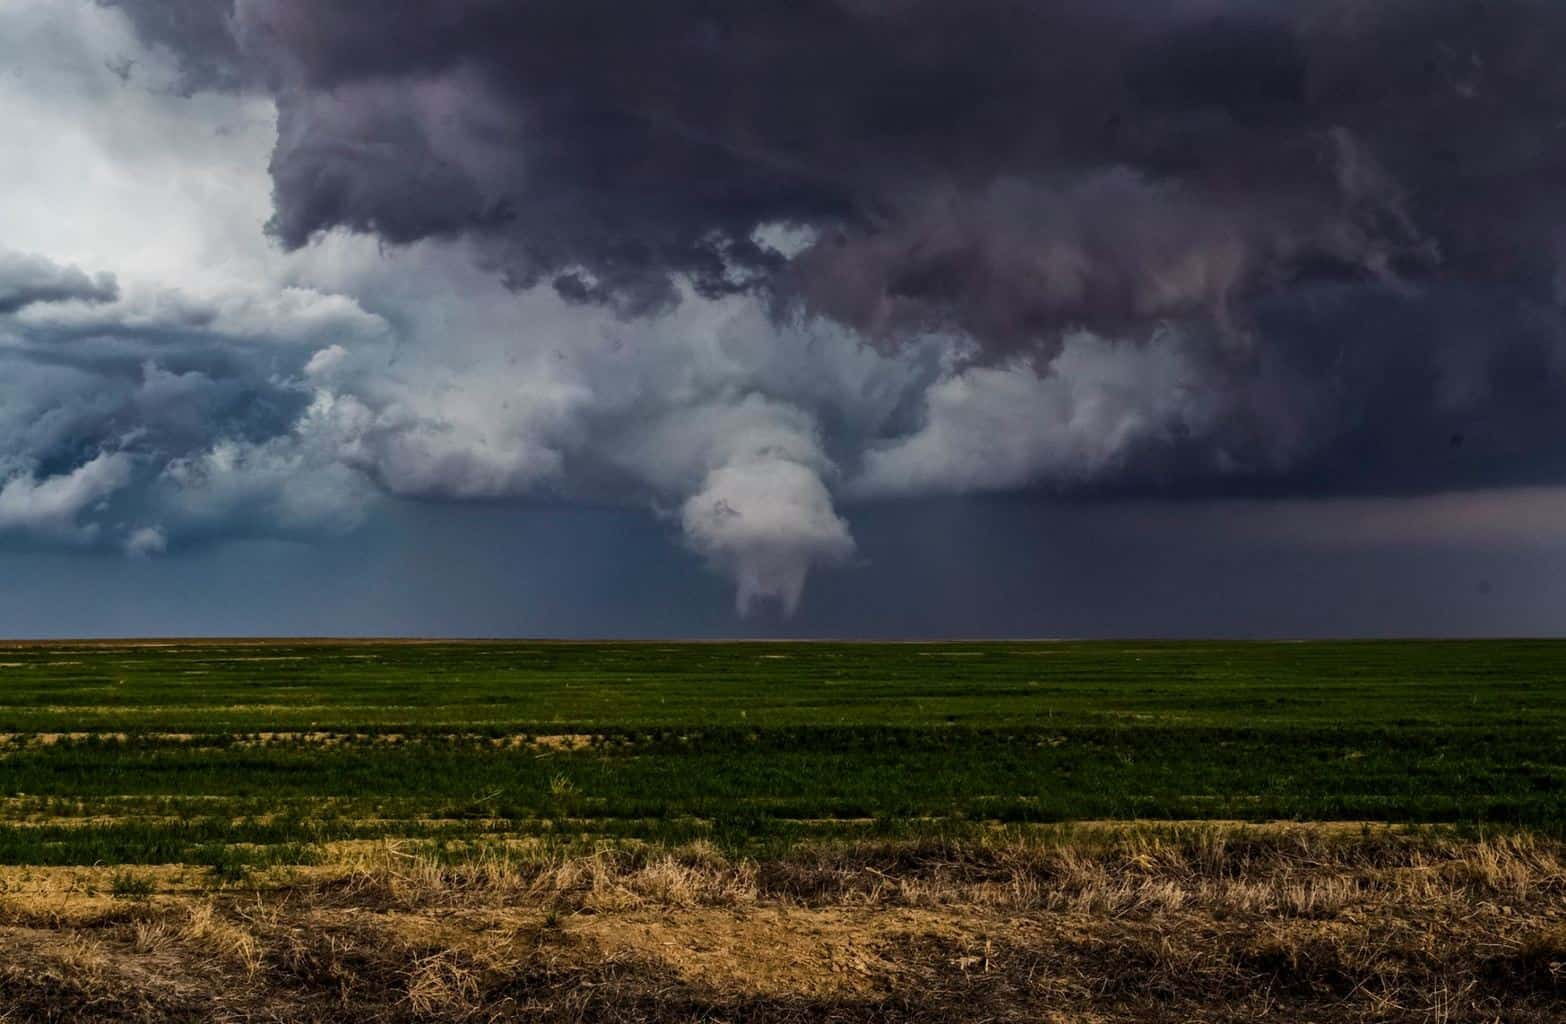 Eads, CO multi vortex tornado on 4.15.16. Thought this would be a fun one to open for title suggestions.....and GO!